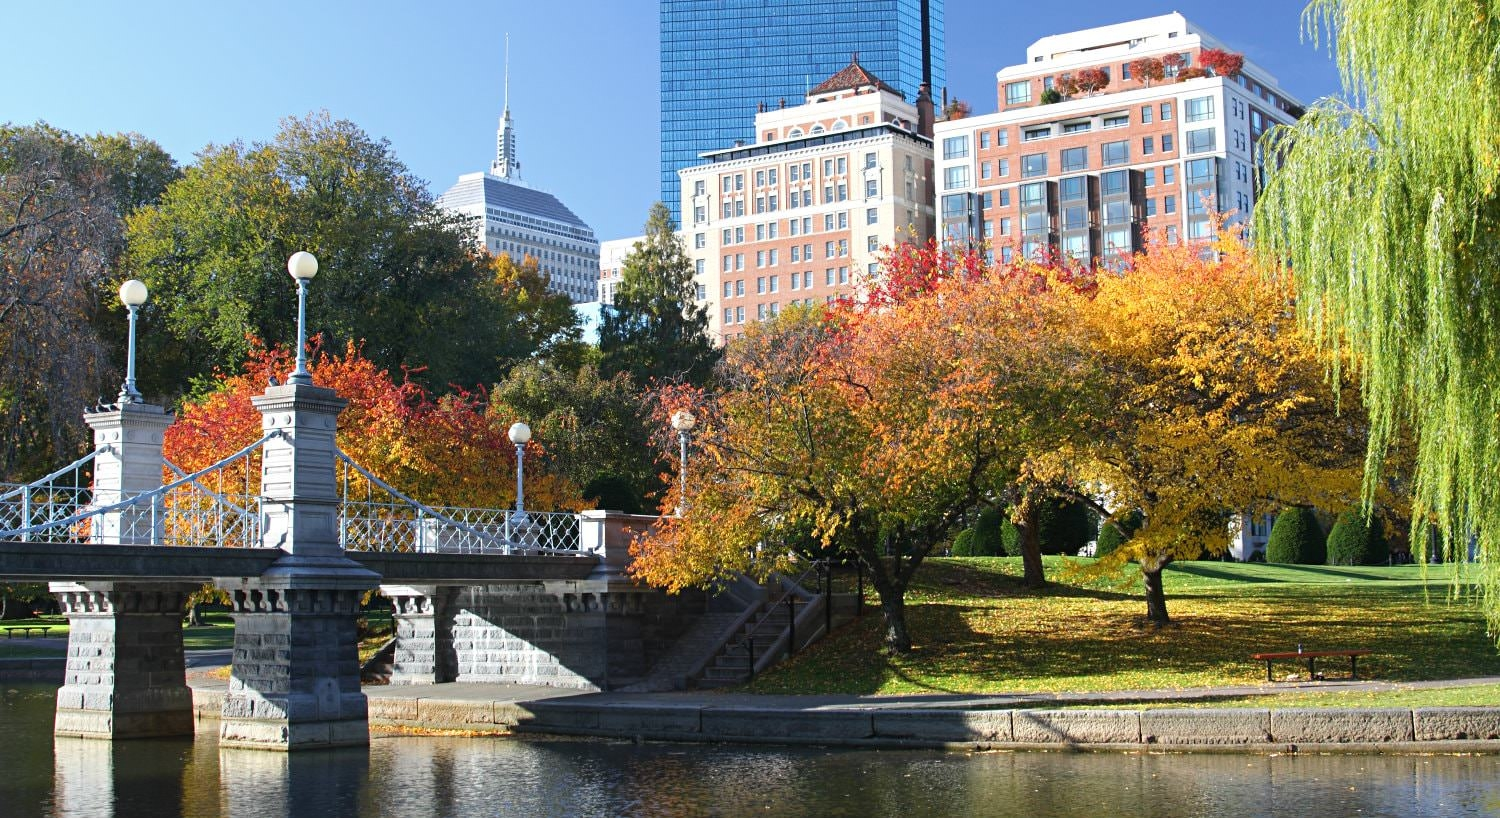 Gray and white stone bridge near a park of autumn hued trees and city buildings in the background